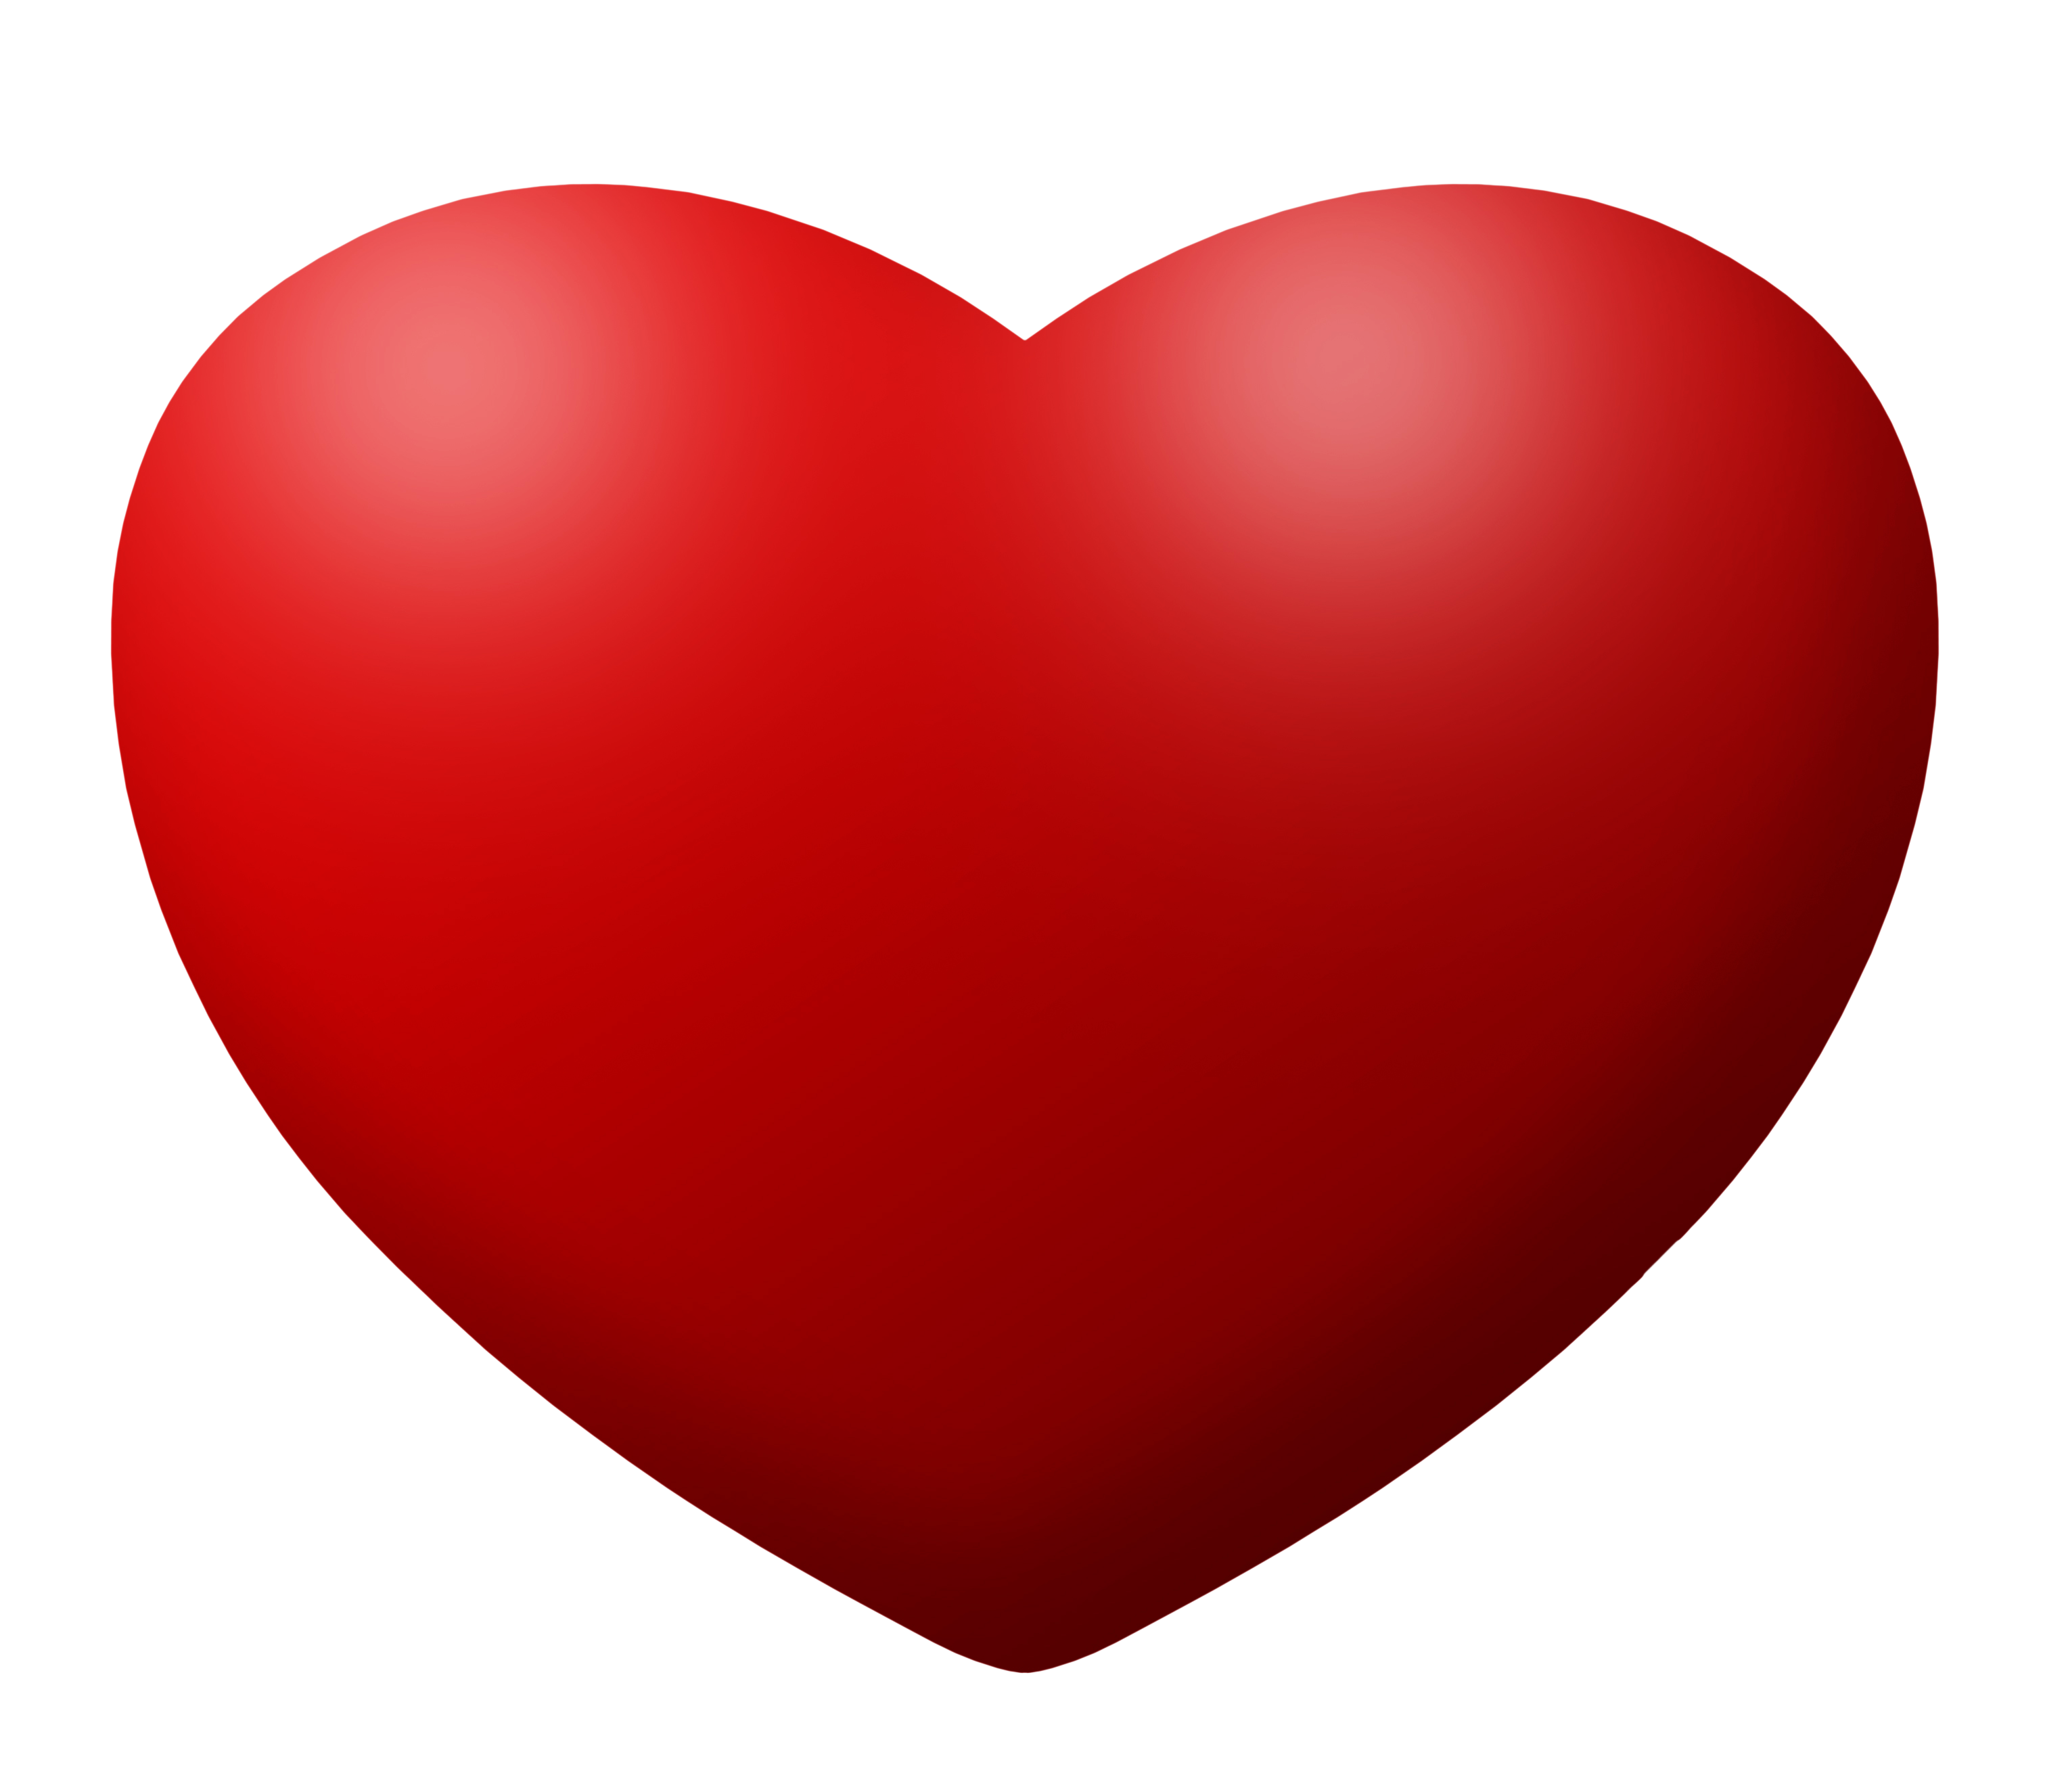 Love Heart Pic - ClipArt Best